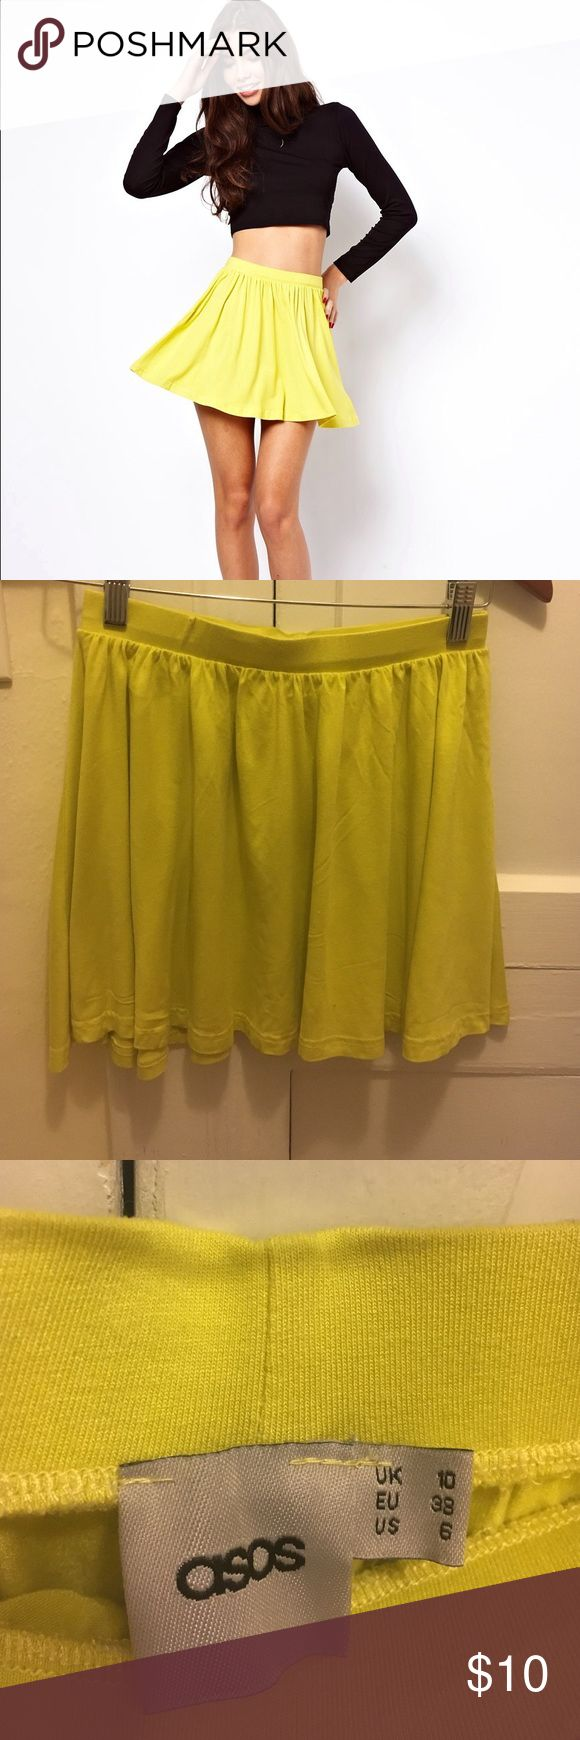 """ASOS skirt in skater style Lemon color. Excellent condition. Lightweight jersey material. Stretch waistband. Pull on style. 95% Viscose, 5% Elastane The model wears a US 4 and is 5'10.5"""" tall ASOS Skirts Mini"""